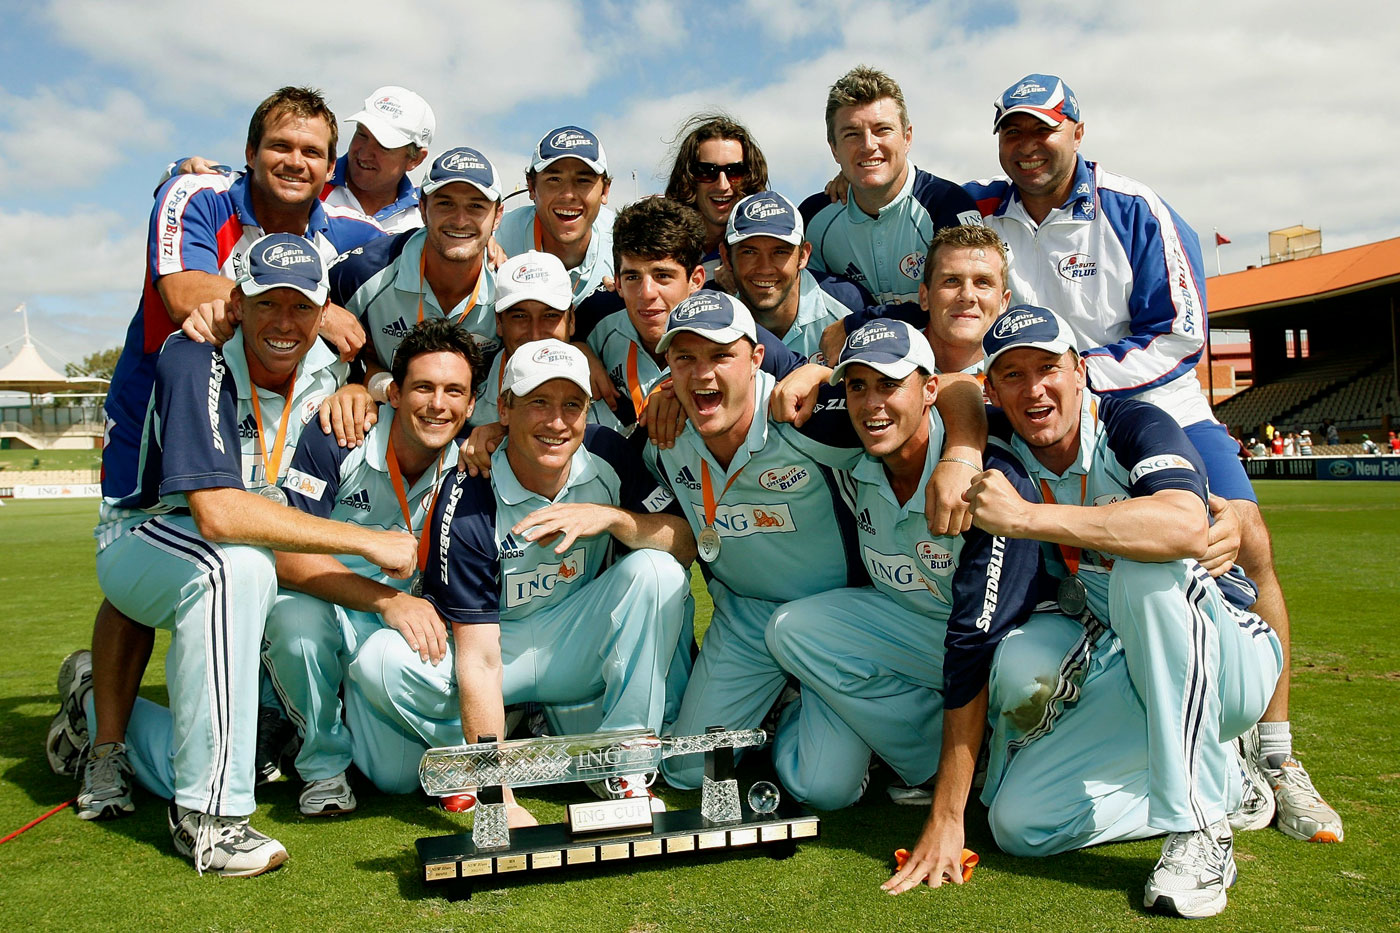 The survivors: New South Wales clung on through Tait's spells and won the final by one wicket